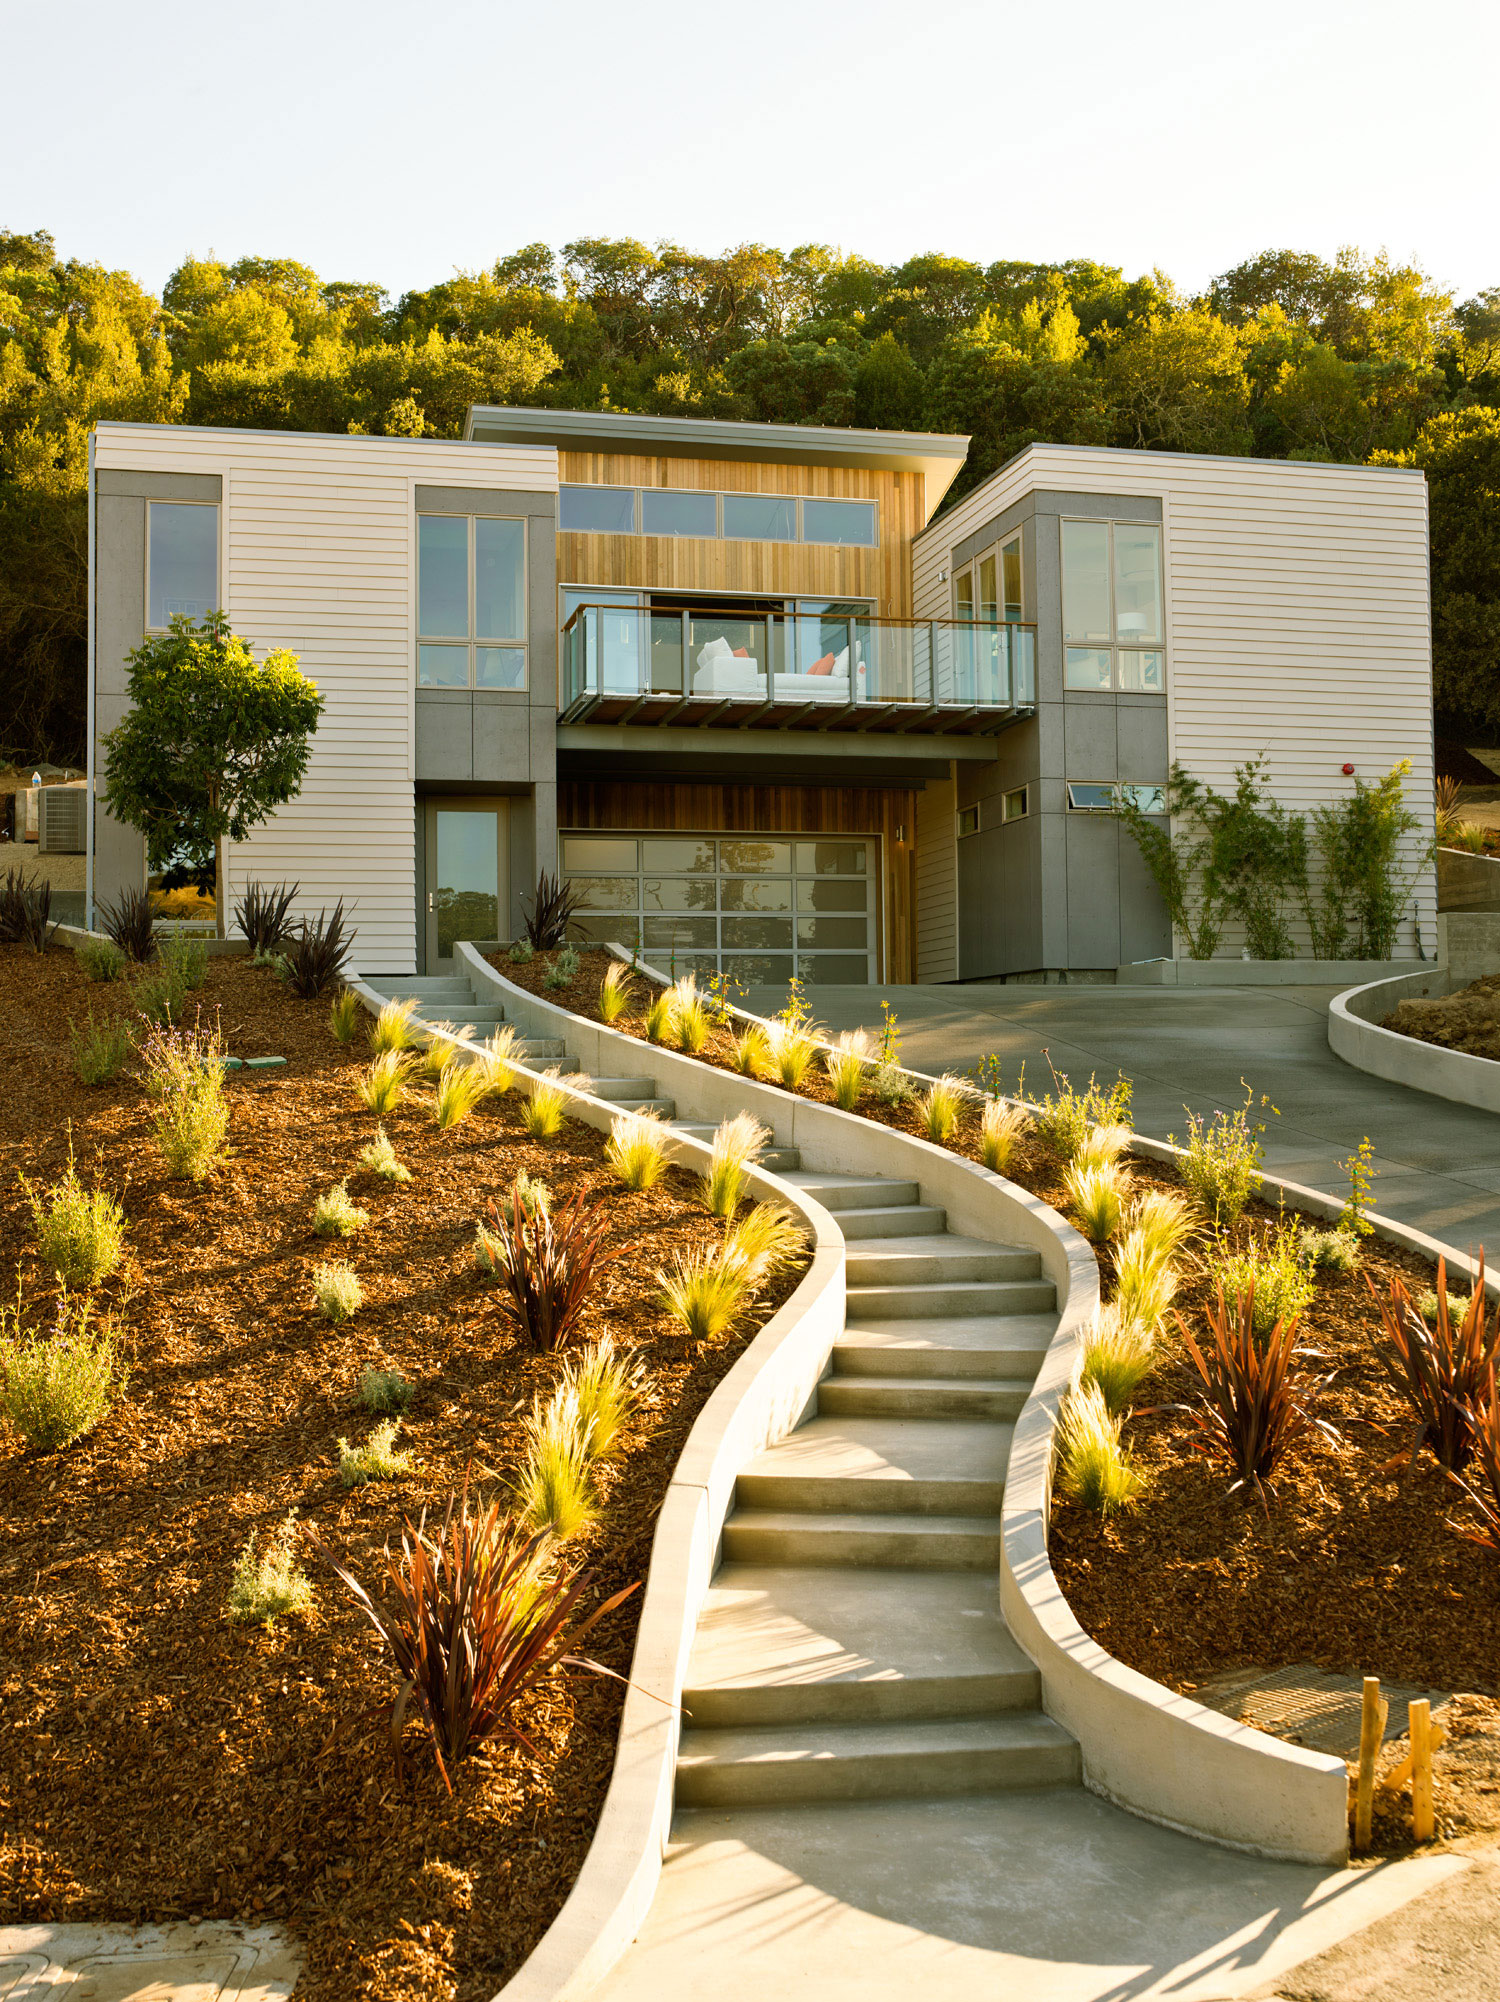 Sunset Idea House: Breezehouse, Healdsburg, CA - Sunset Magazine